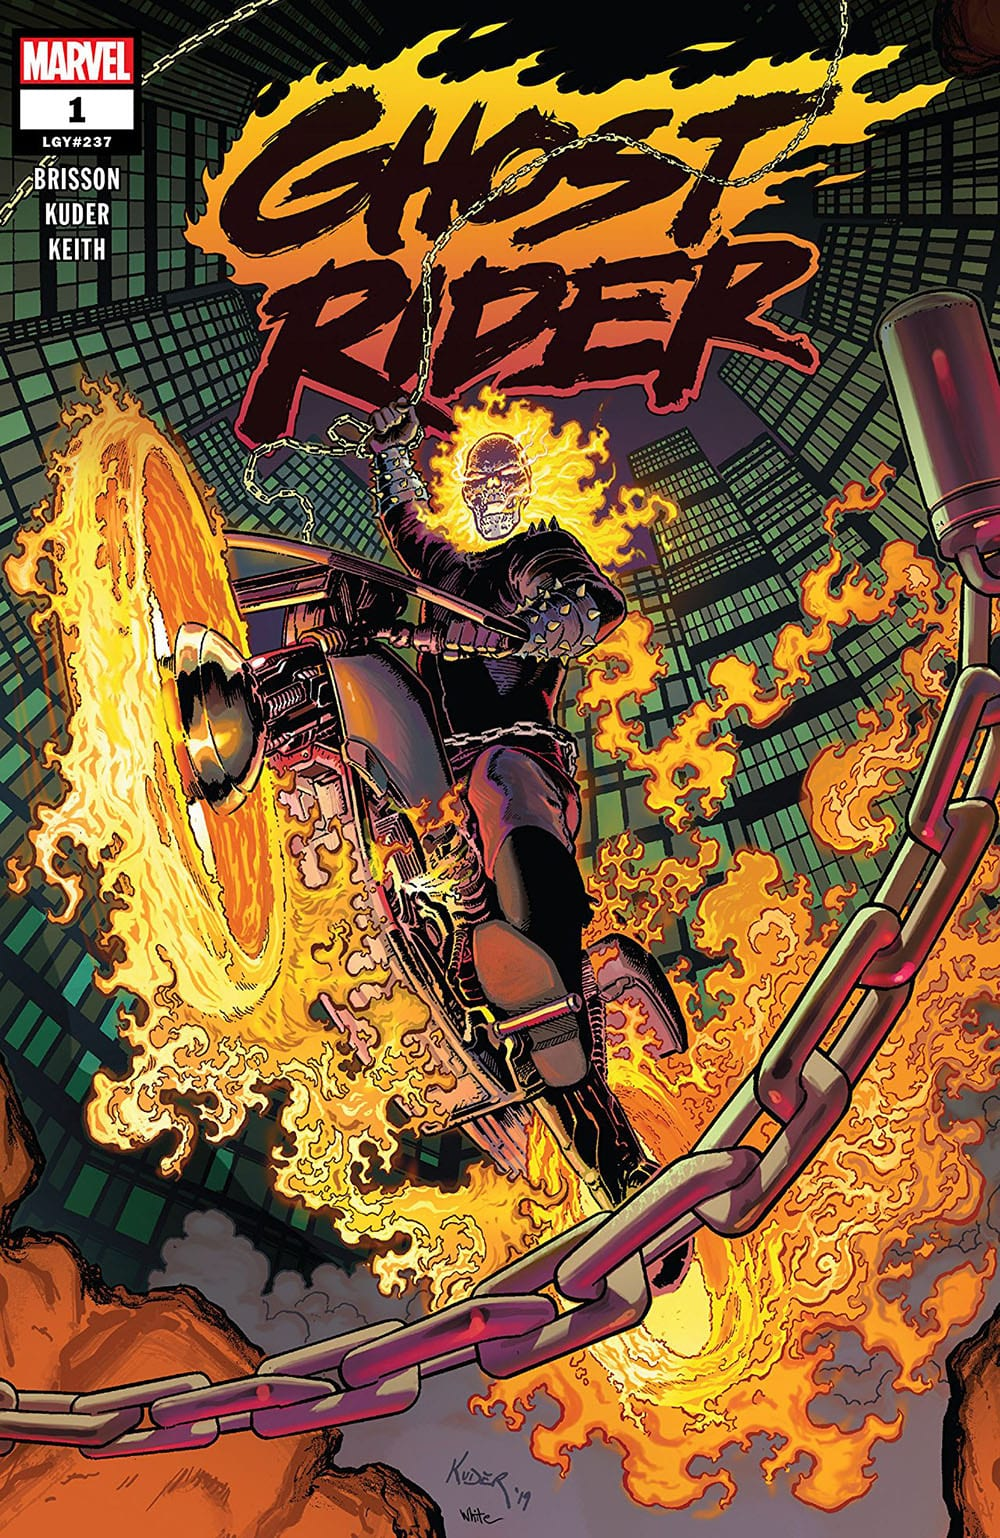 Review: Marvel's GHOST RIDER #1 Begins One Hell of a Story 1